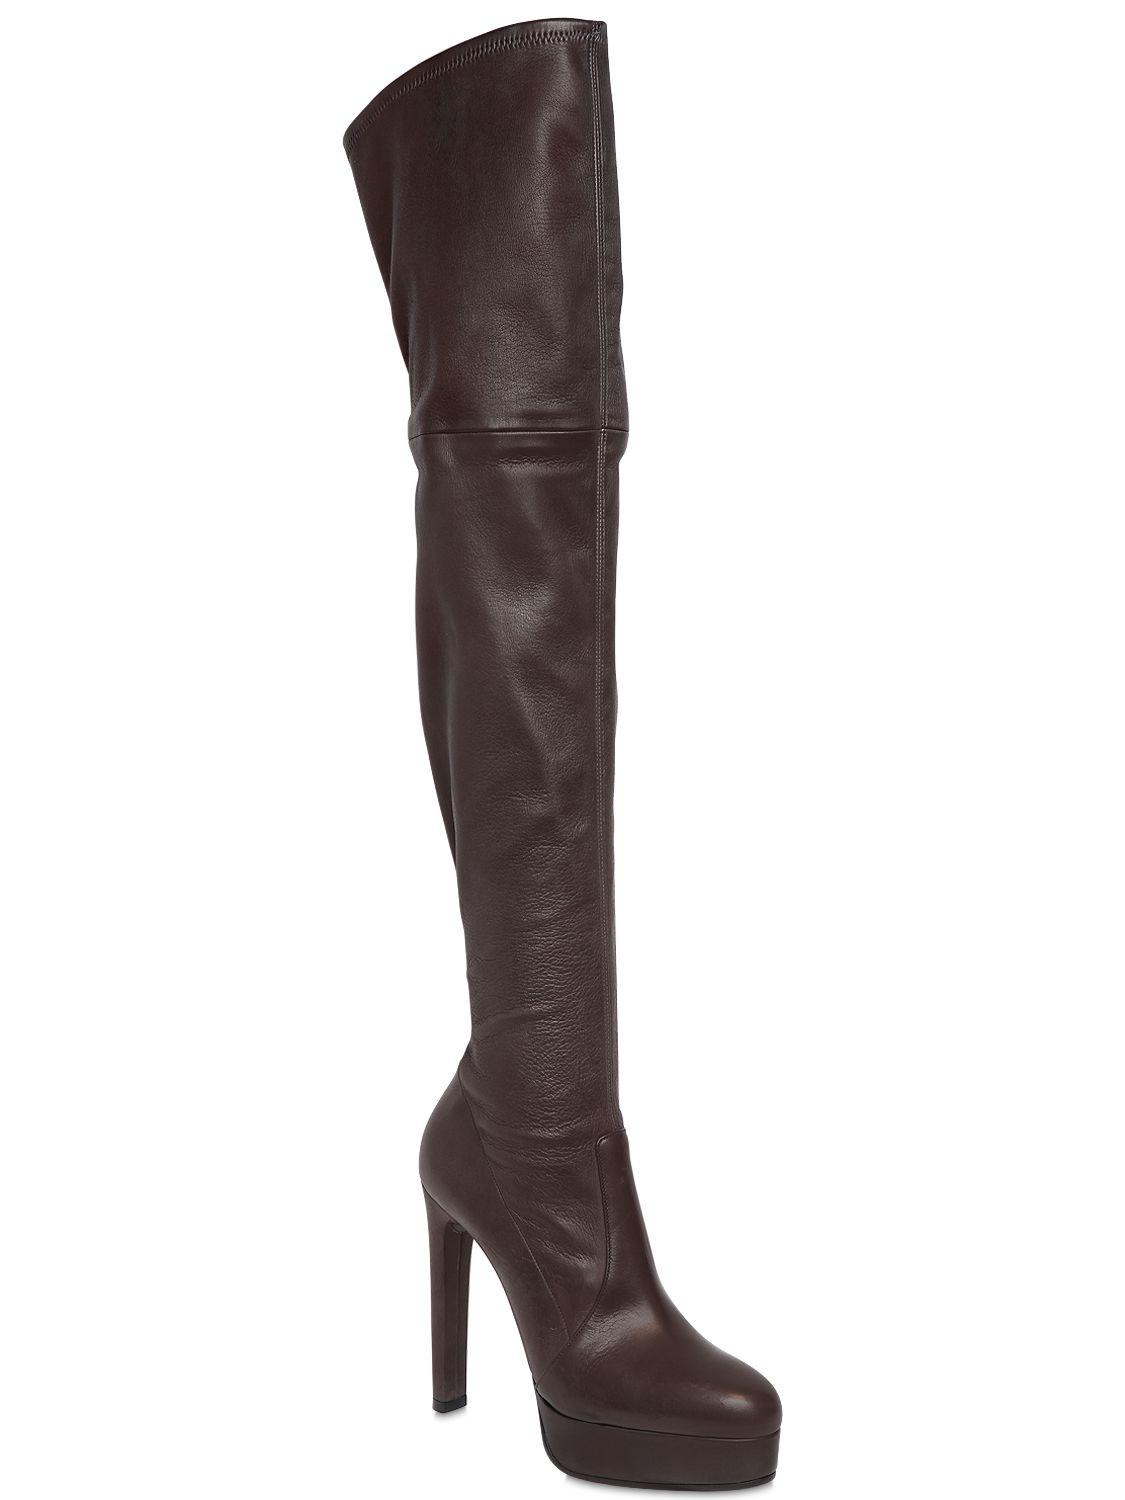 c13d56b3635 Casadei - Black 120mm Nappa Leather Over The Knee Boots - Lyst. View  fullscreen